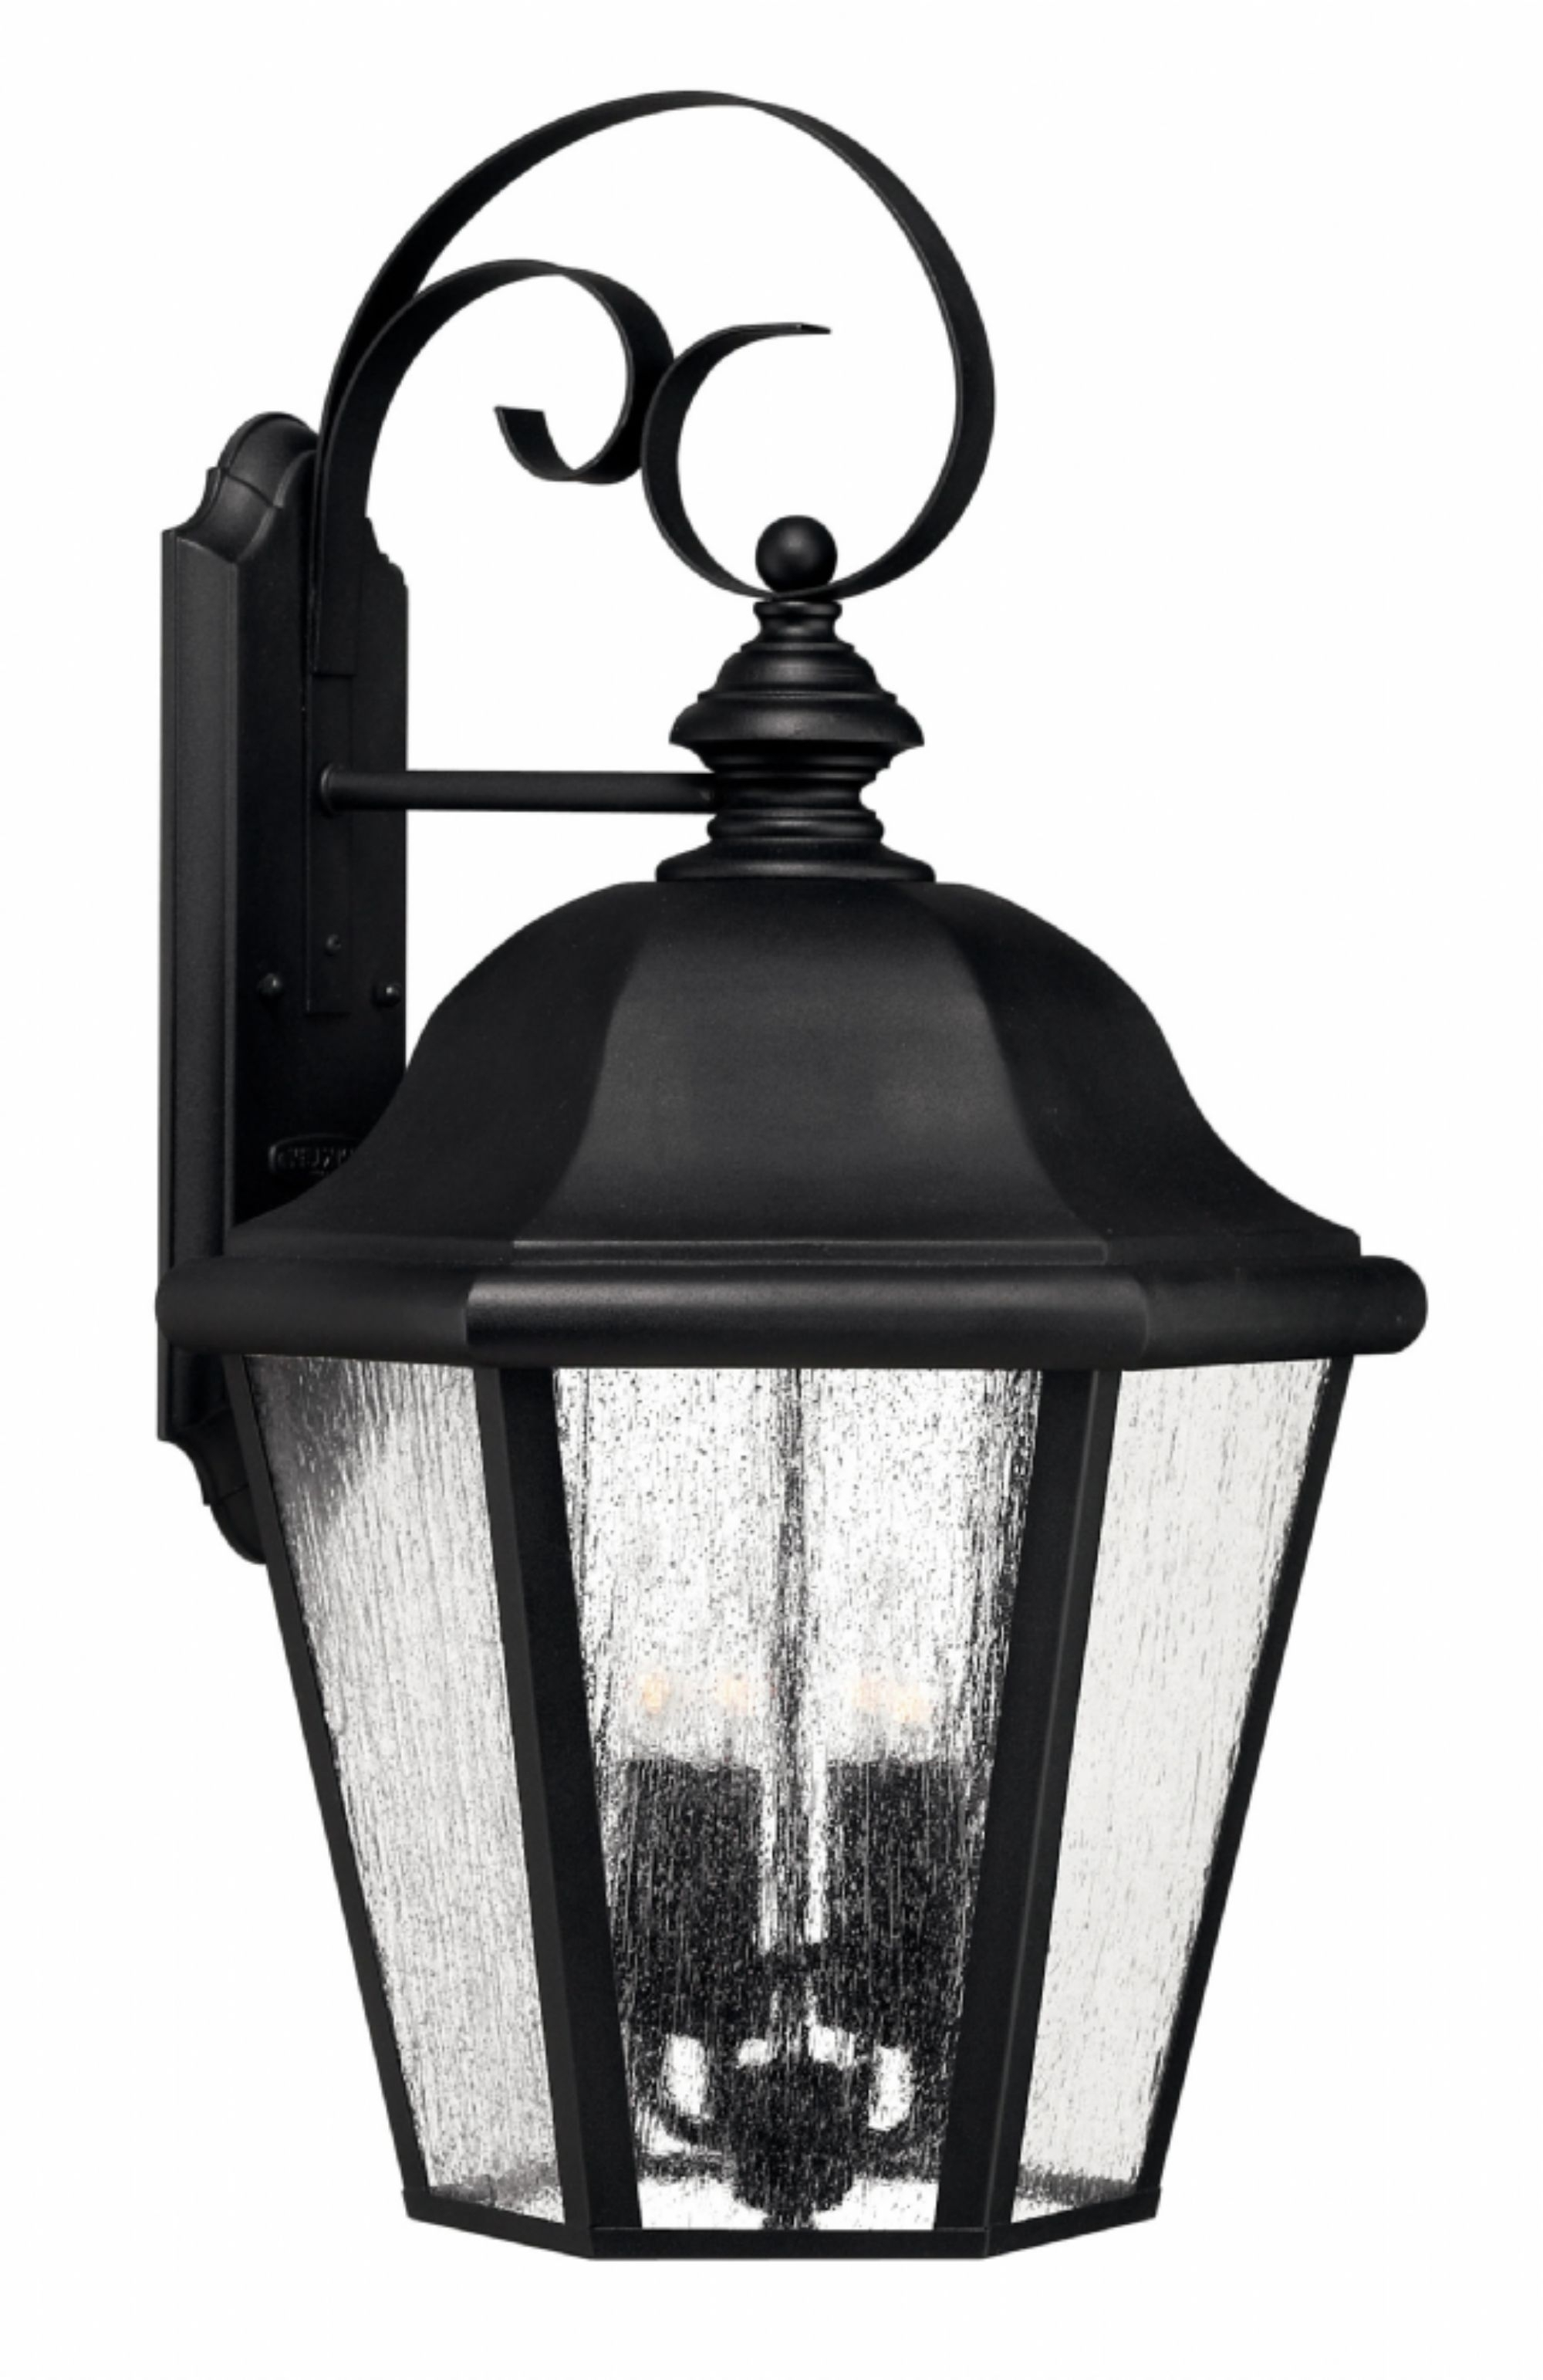 Black Edgewater > Exterior Wall Mount In Most Recent Outdoor Wall Sconce Lighting Fixtures (View 5 of 20)